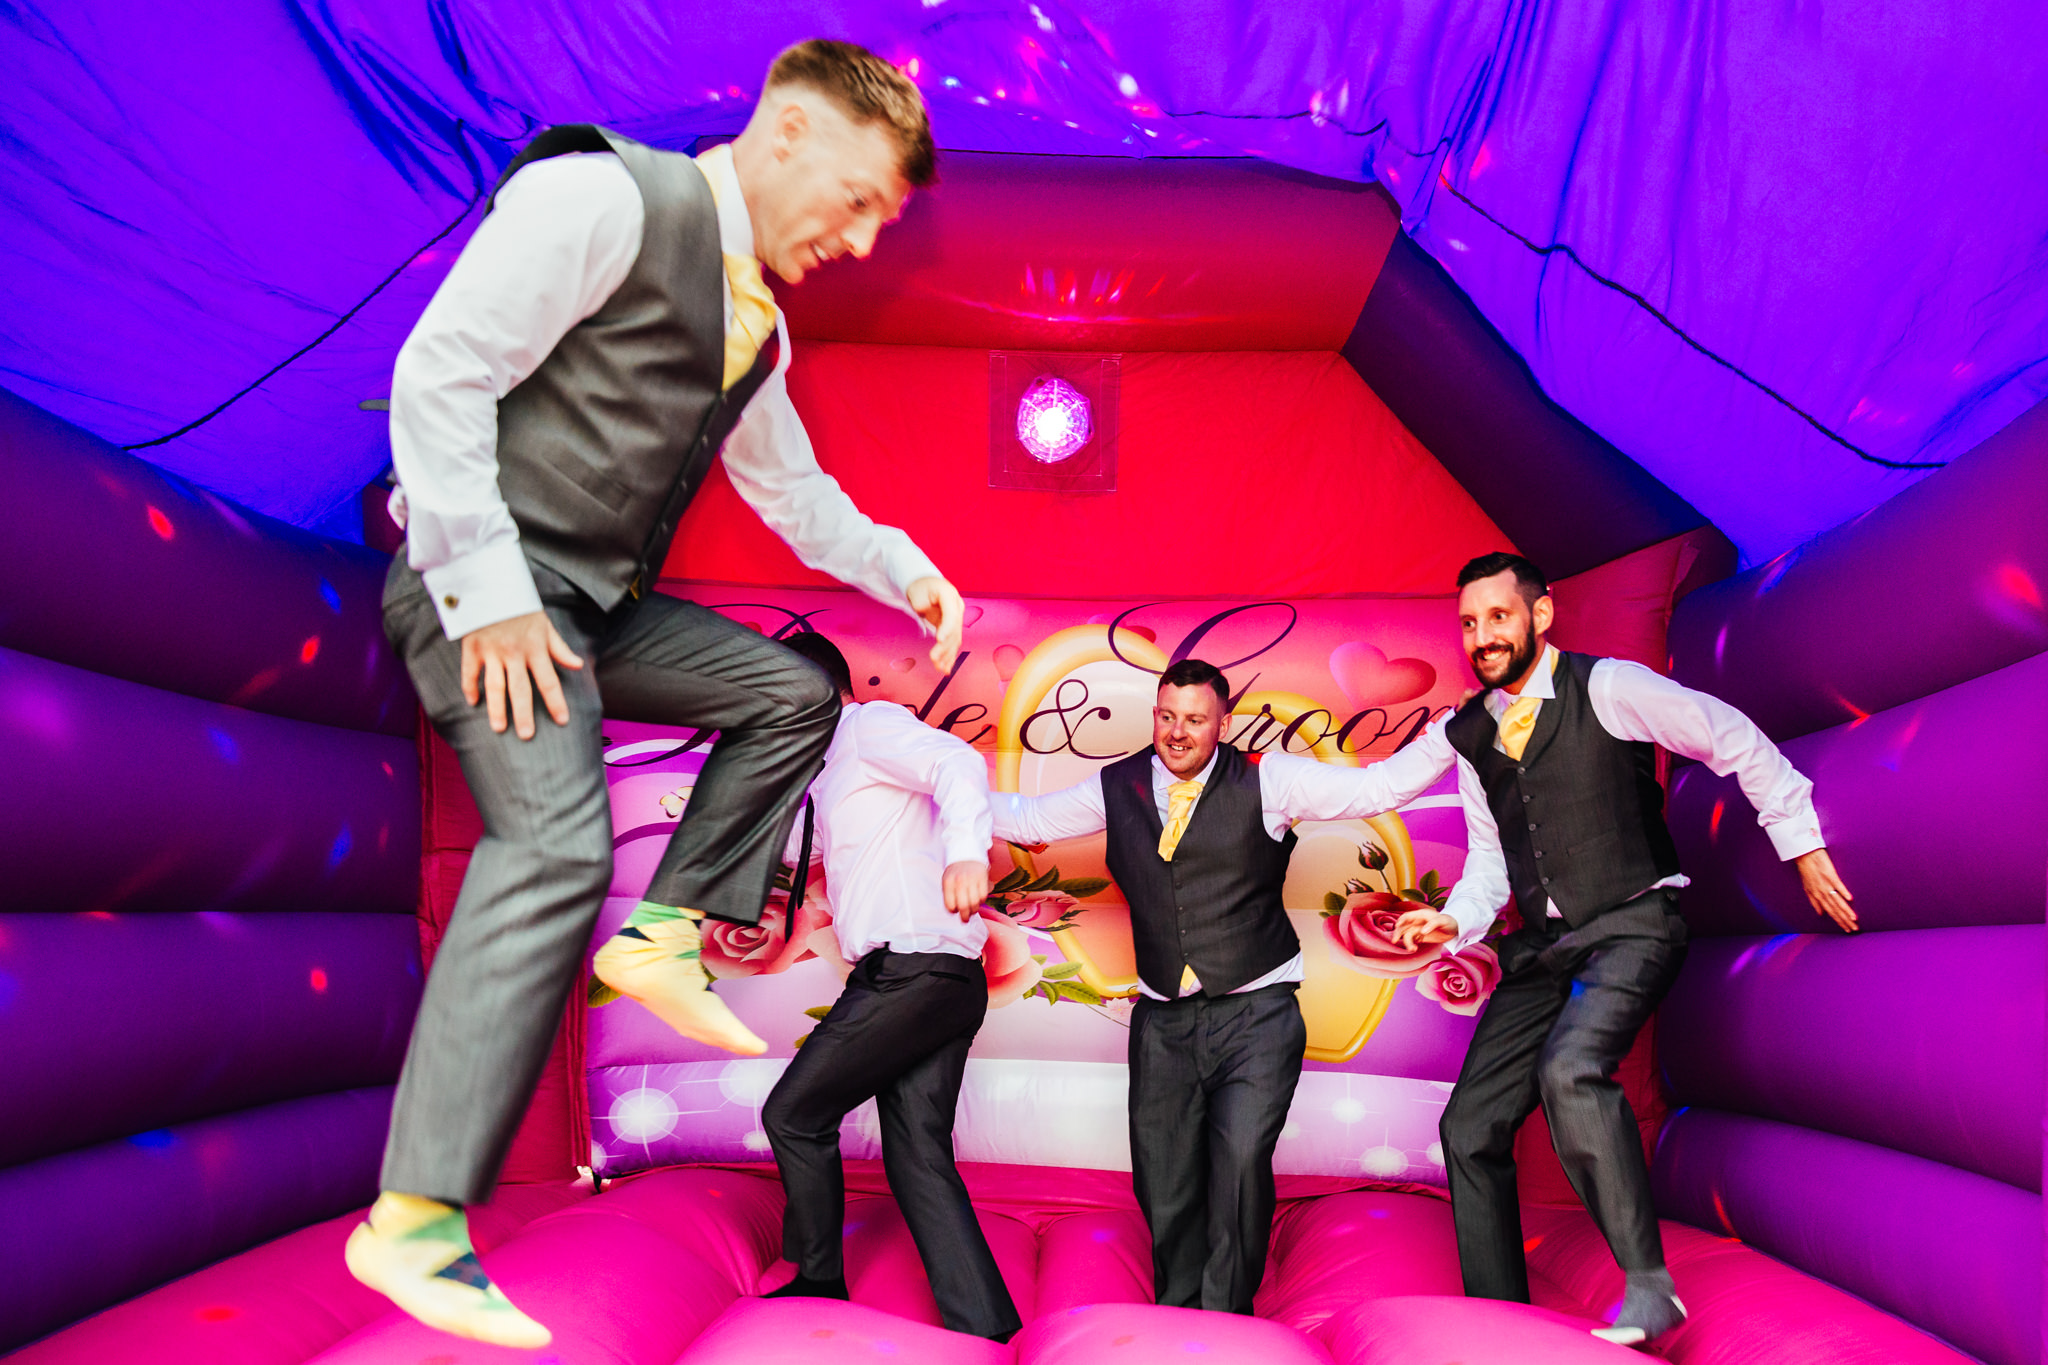 Wedding Entertainment - Groom & Groomsmen on pink bouncy castle having the time of their lives at wedding